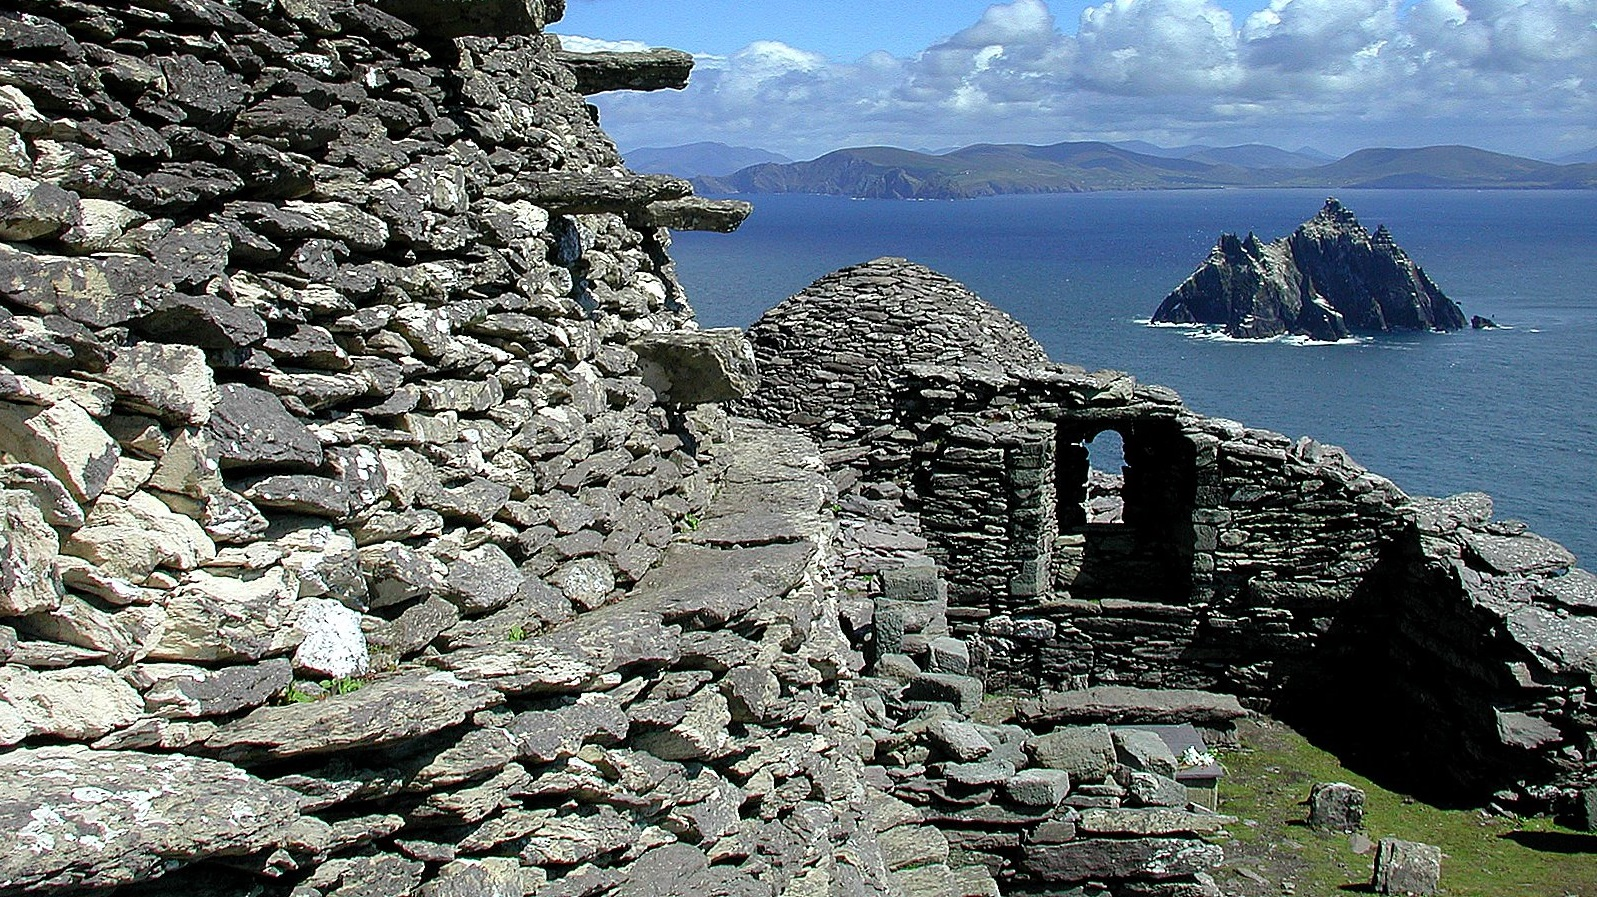 Star wars va booster la fr quentation touristique de l irlande spotern - Office de tourisme irlandais ...